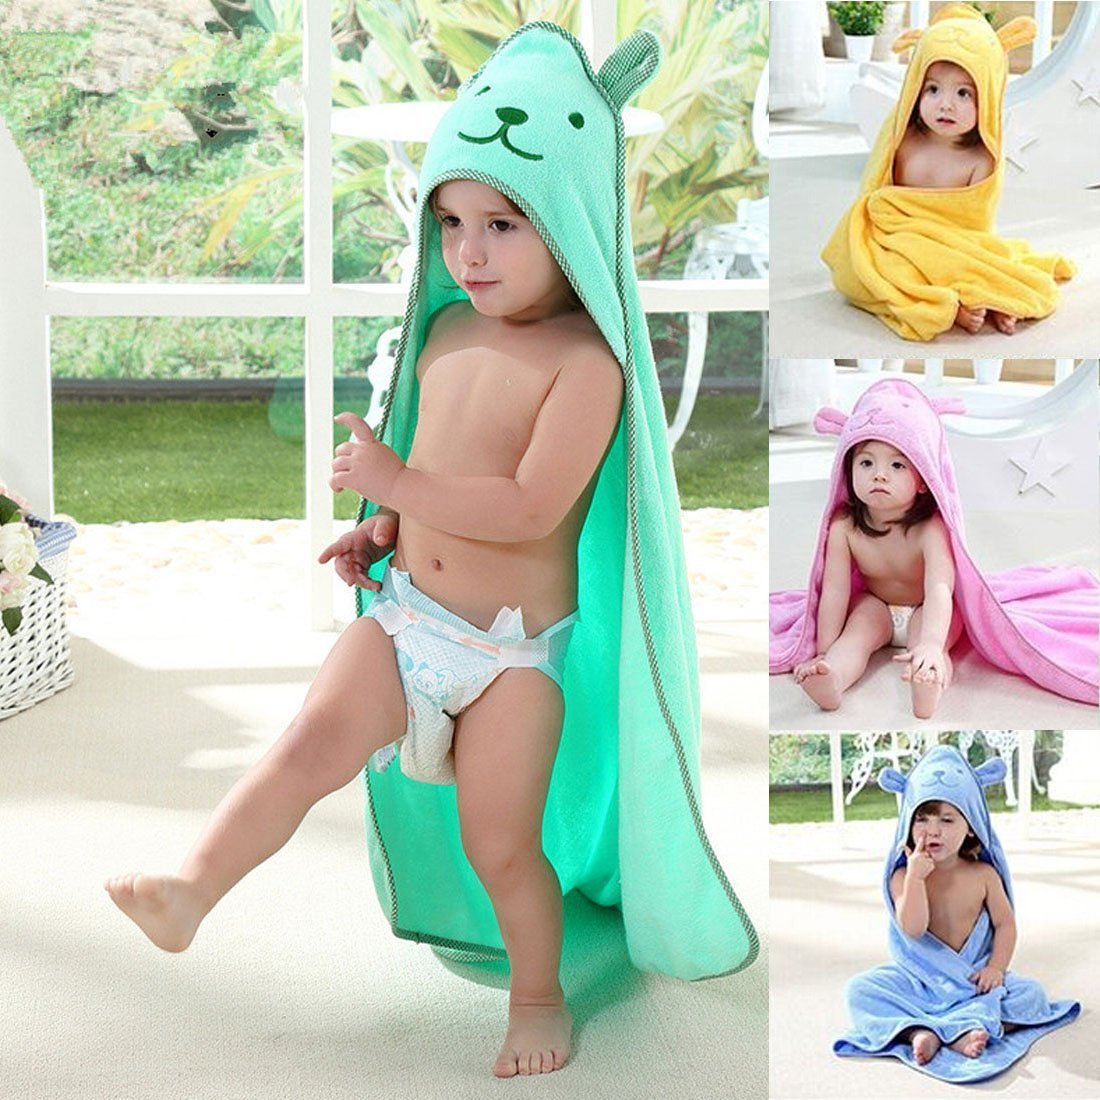 Baby Hooded Towel with Bear Ear- Soft and Thick 100% Cotton Bath Set for Girls, Boys, Infant ad Toddler, Good Choice (Green)